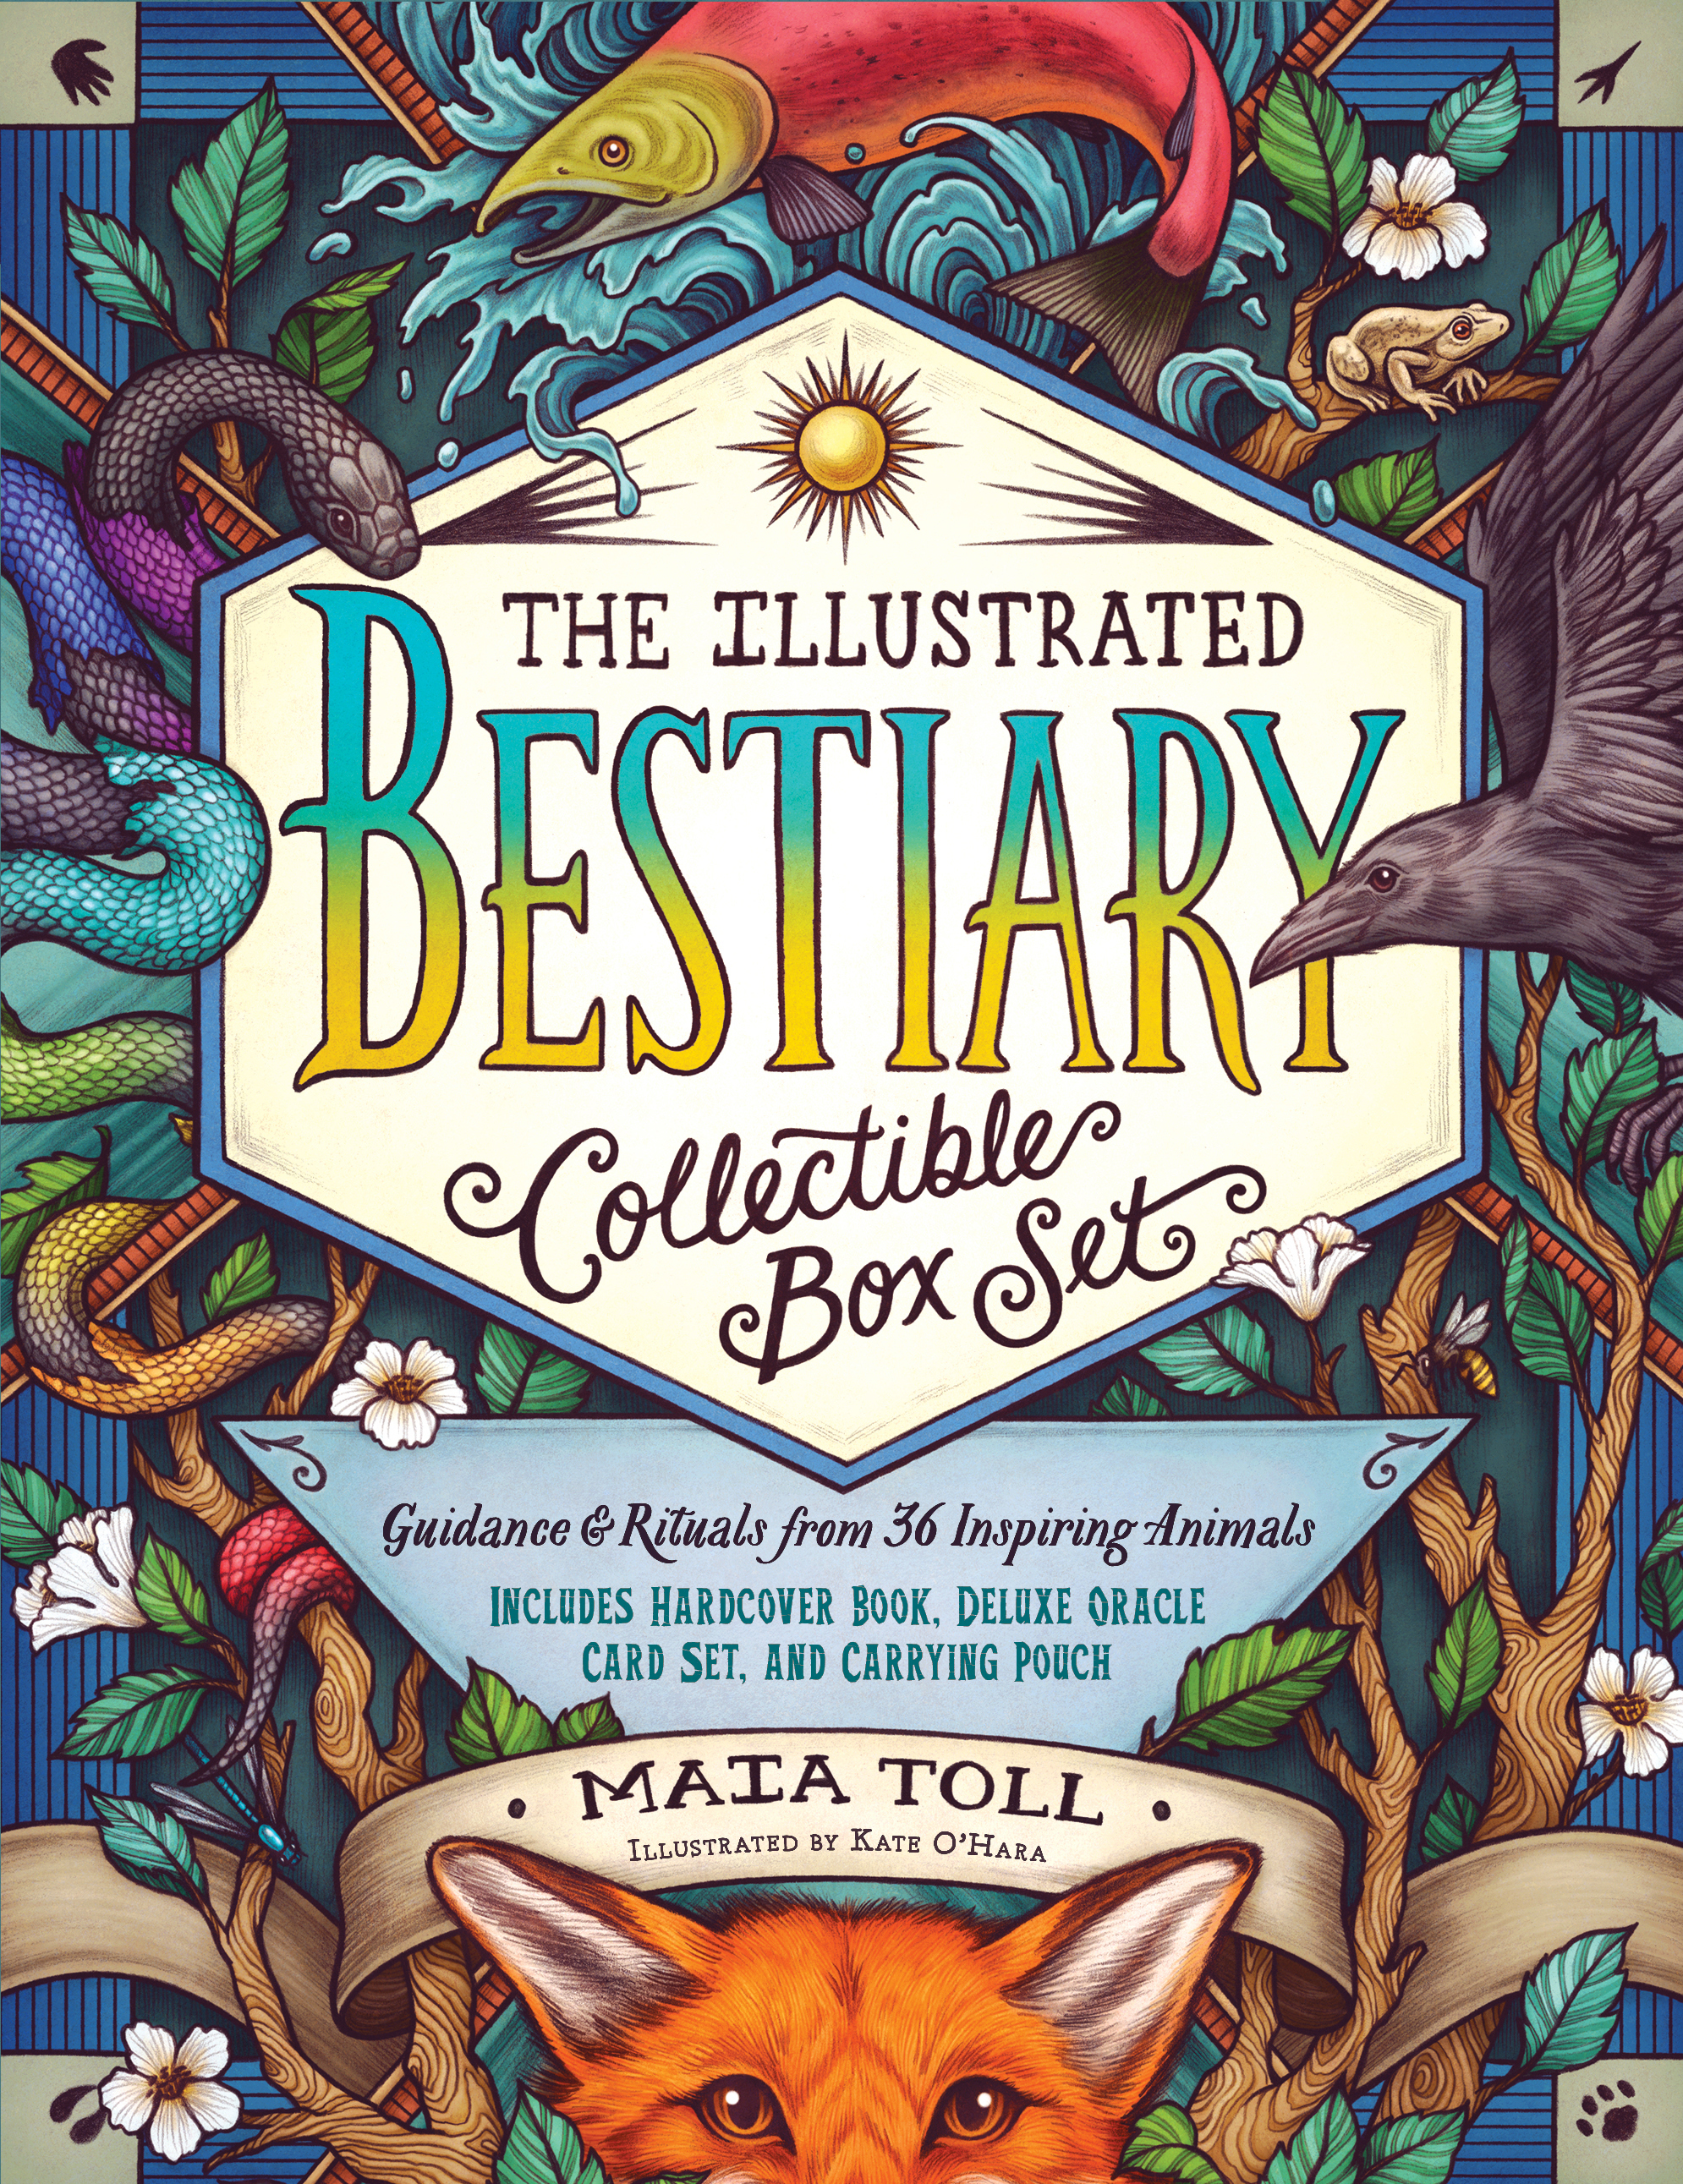 The Illustrated Bestiary Collectible Box Set Guidance and Rituals from 36 Inspiring Animals; Includes Hardcover Book, Deluxe Oracle Card Set, and Carrying Pouch - Maia Toll